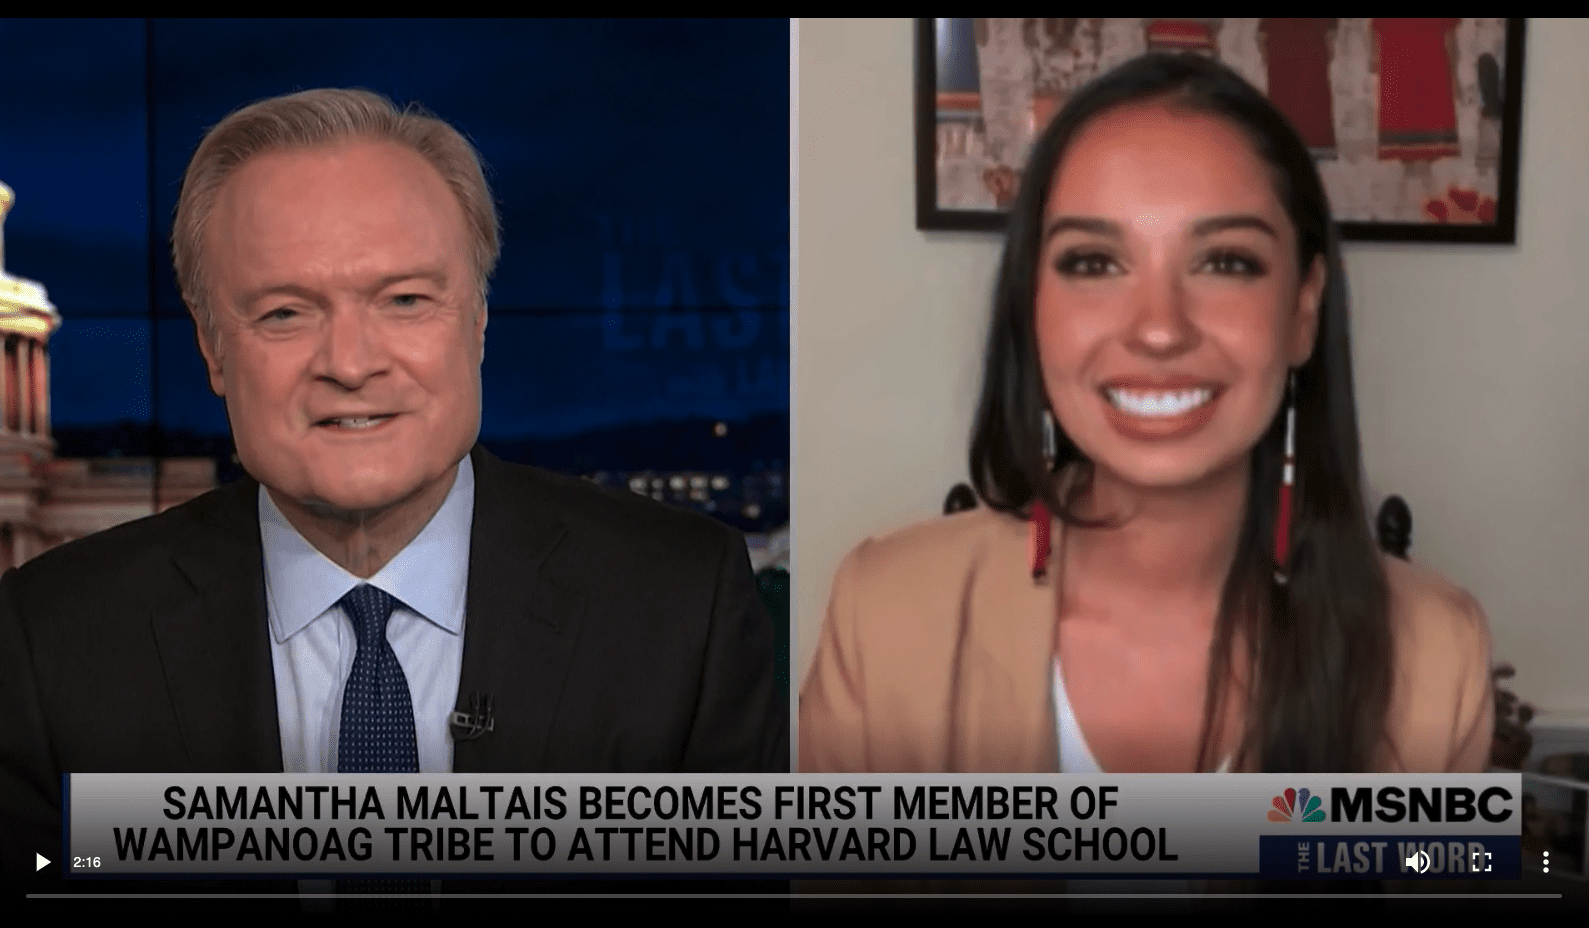 Samantha Maltais, American Indian College Fund Law Scholarship Recipient, Interviewed Live on MSNBC's The Last Word with Lawrence O'Donnell